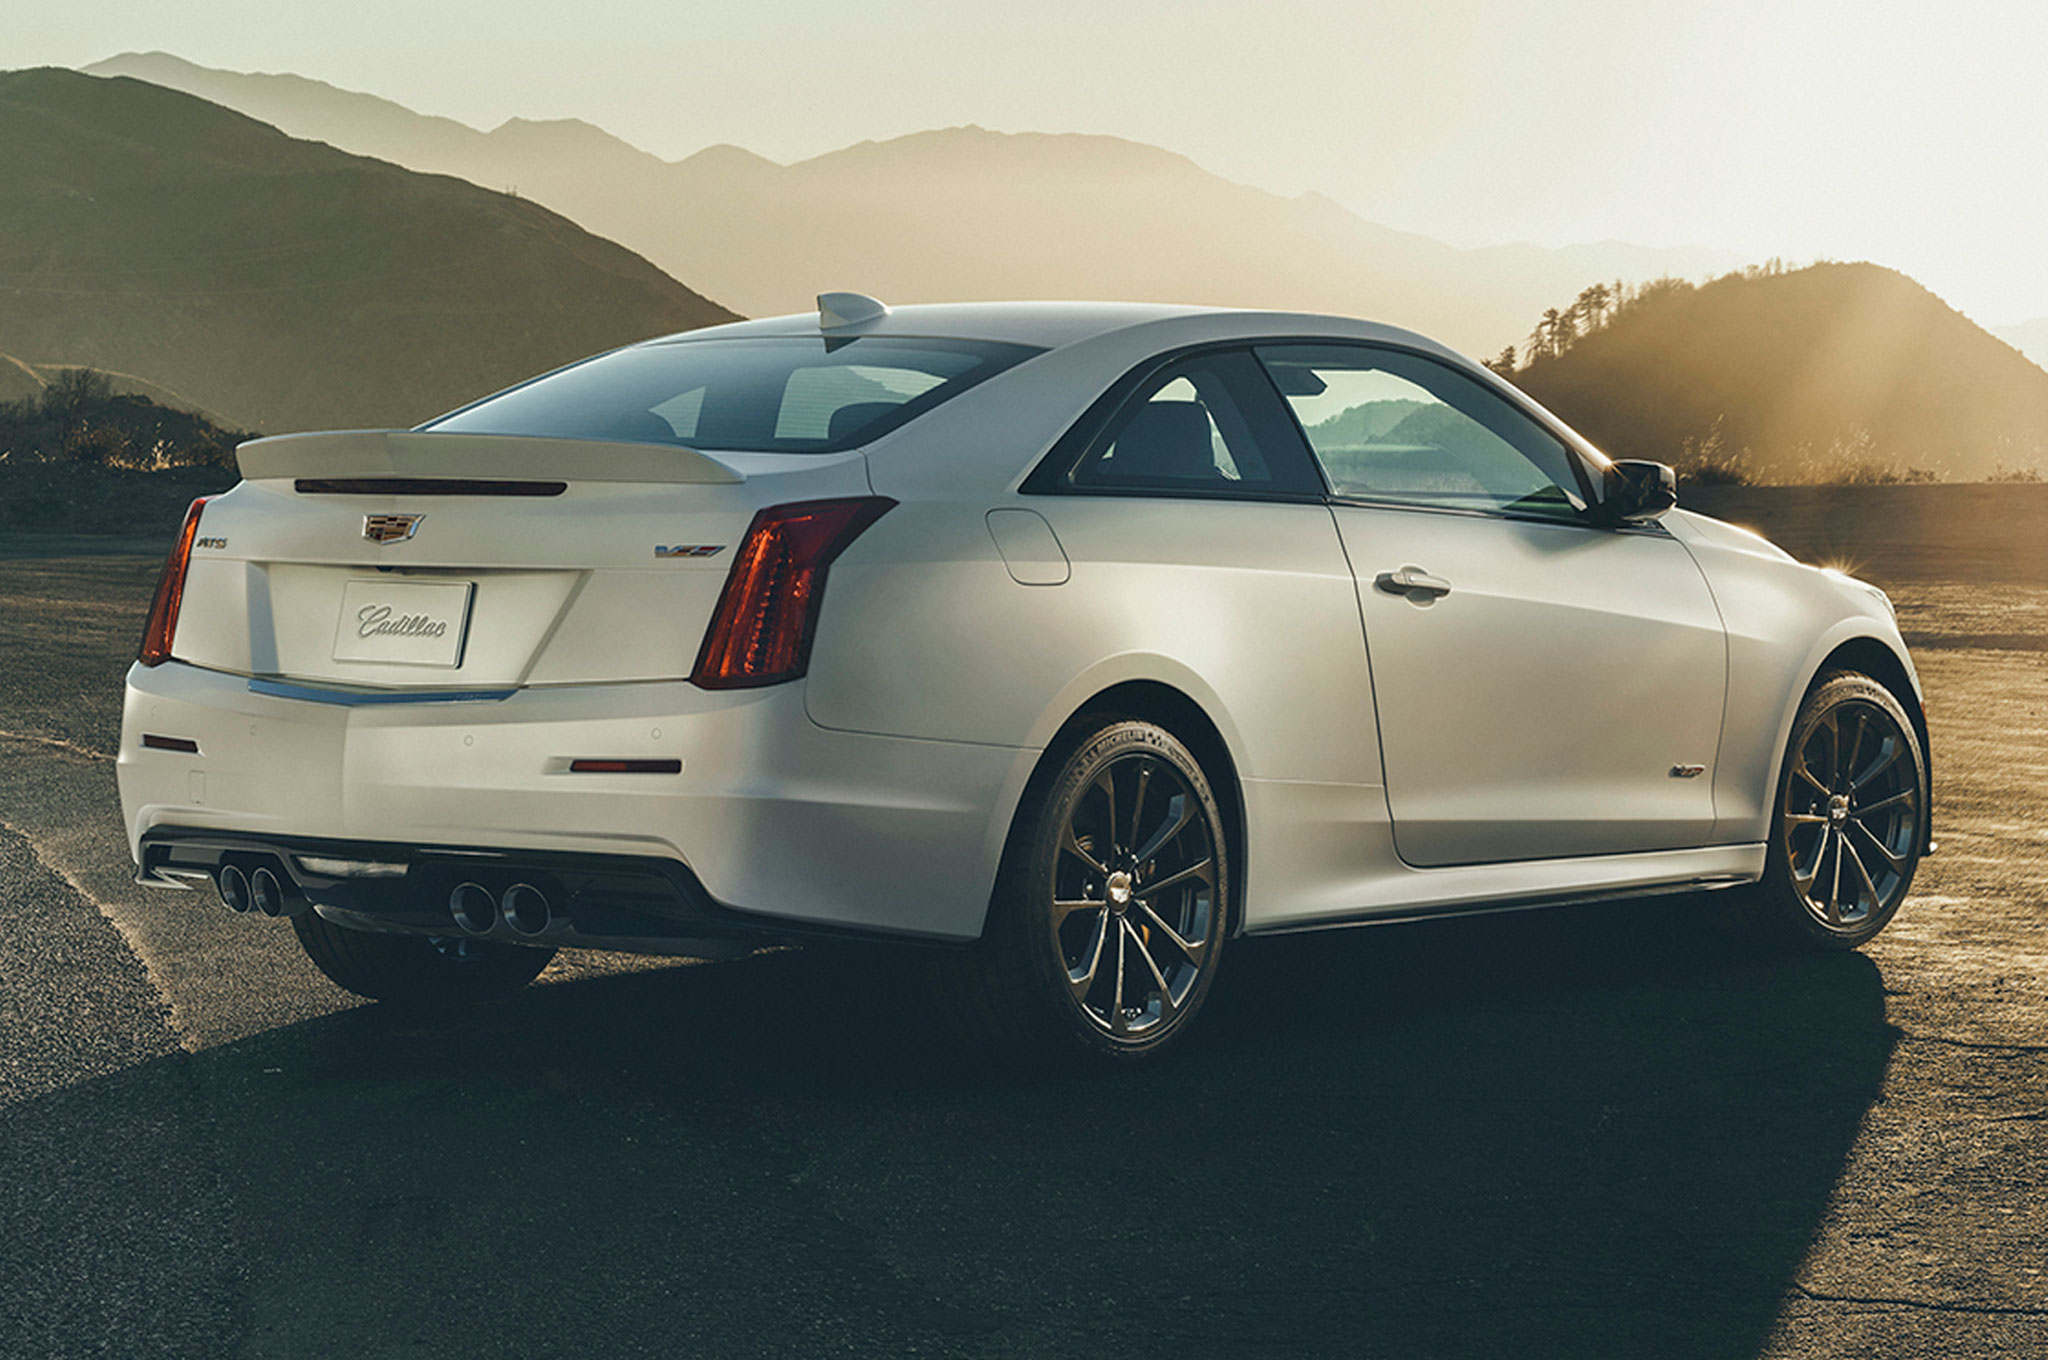 2016 cadillac ats v horsepower sae rated at 464 hp. Black Bedroom Furniture Sets. Home Design Ideas